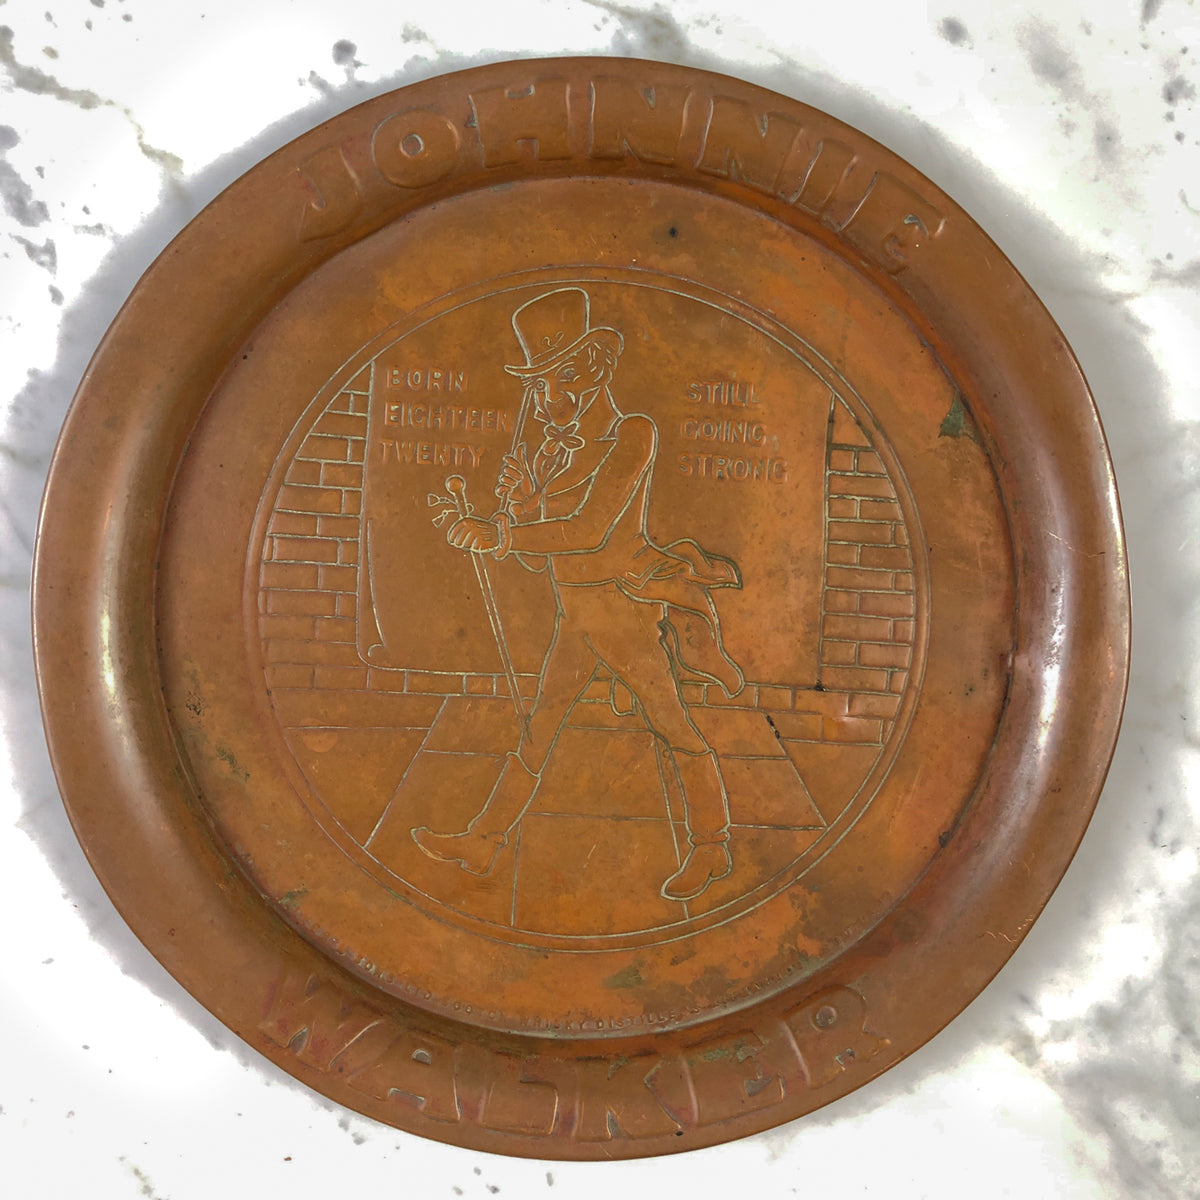 Johnnie Walker Copper Tray